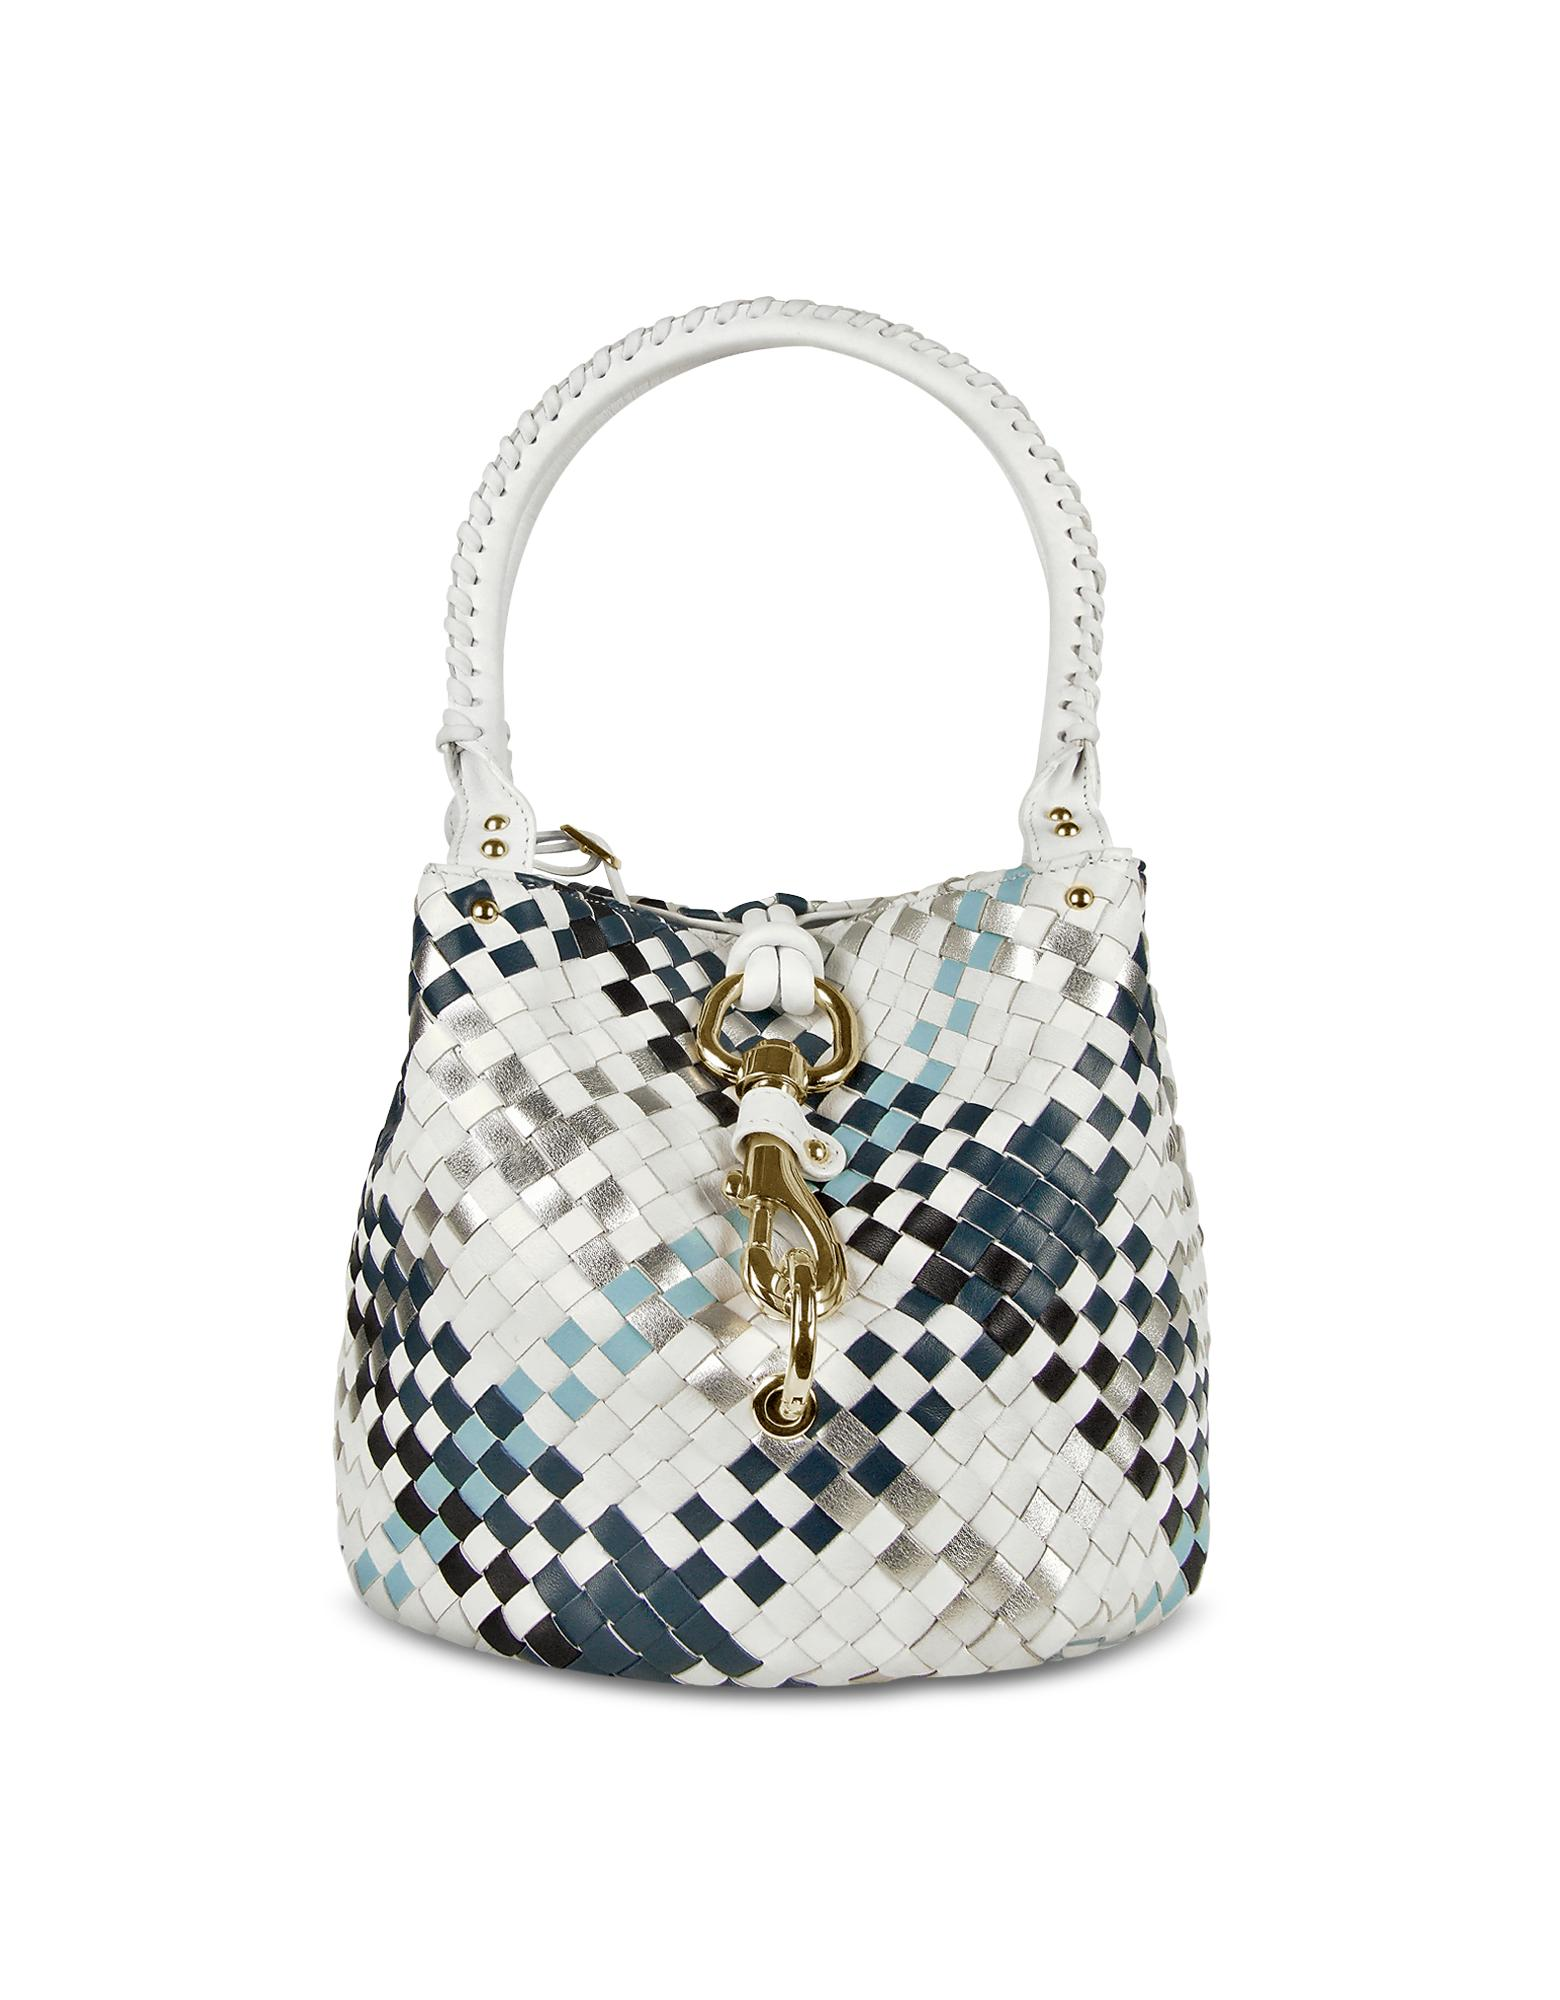 Fontanelli  Blue & White Woven Leather Mini Bucket Bag